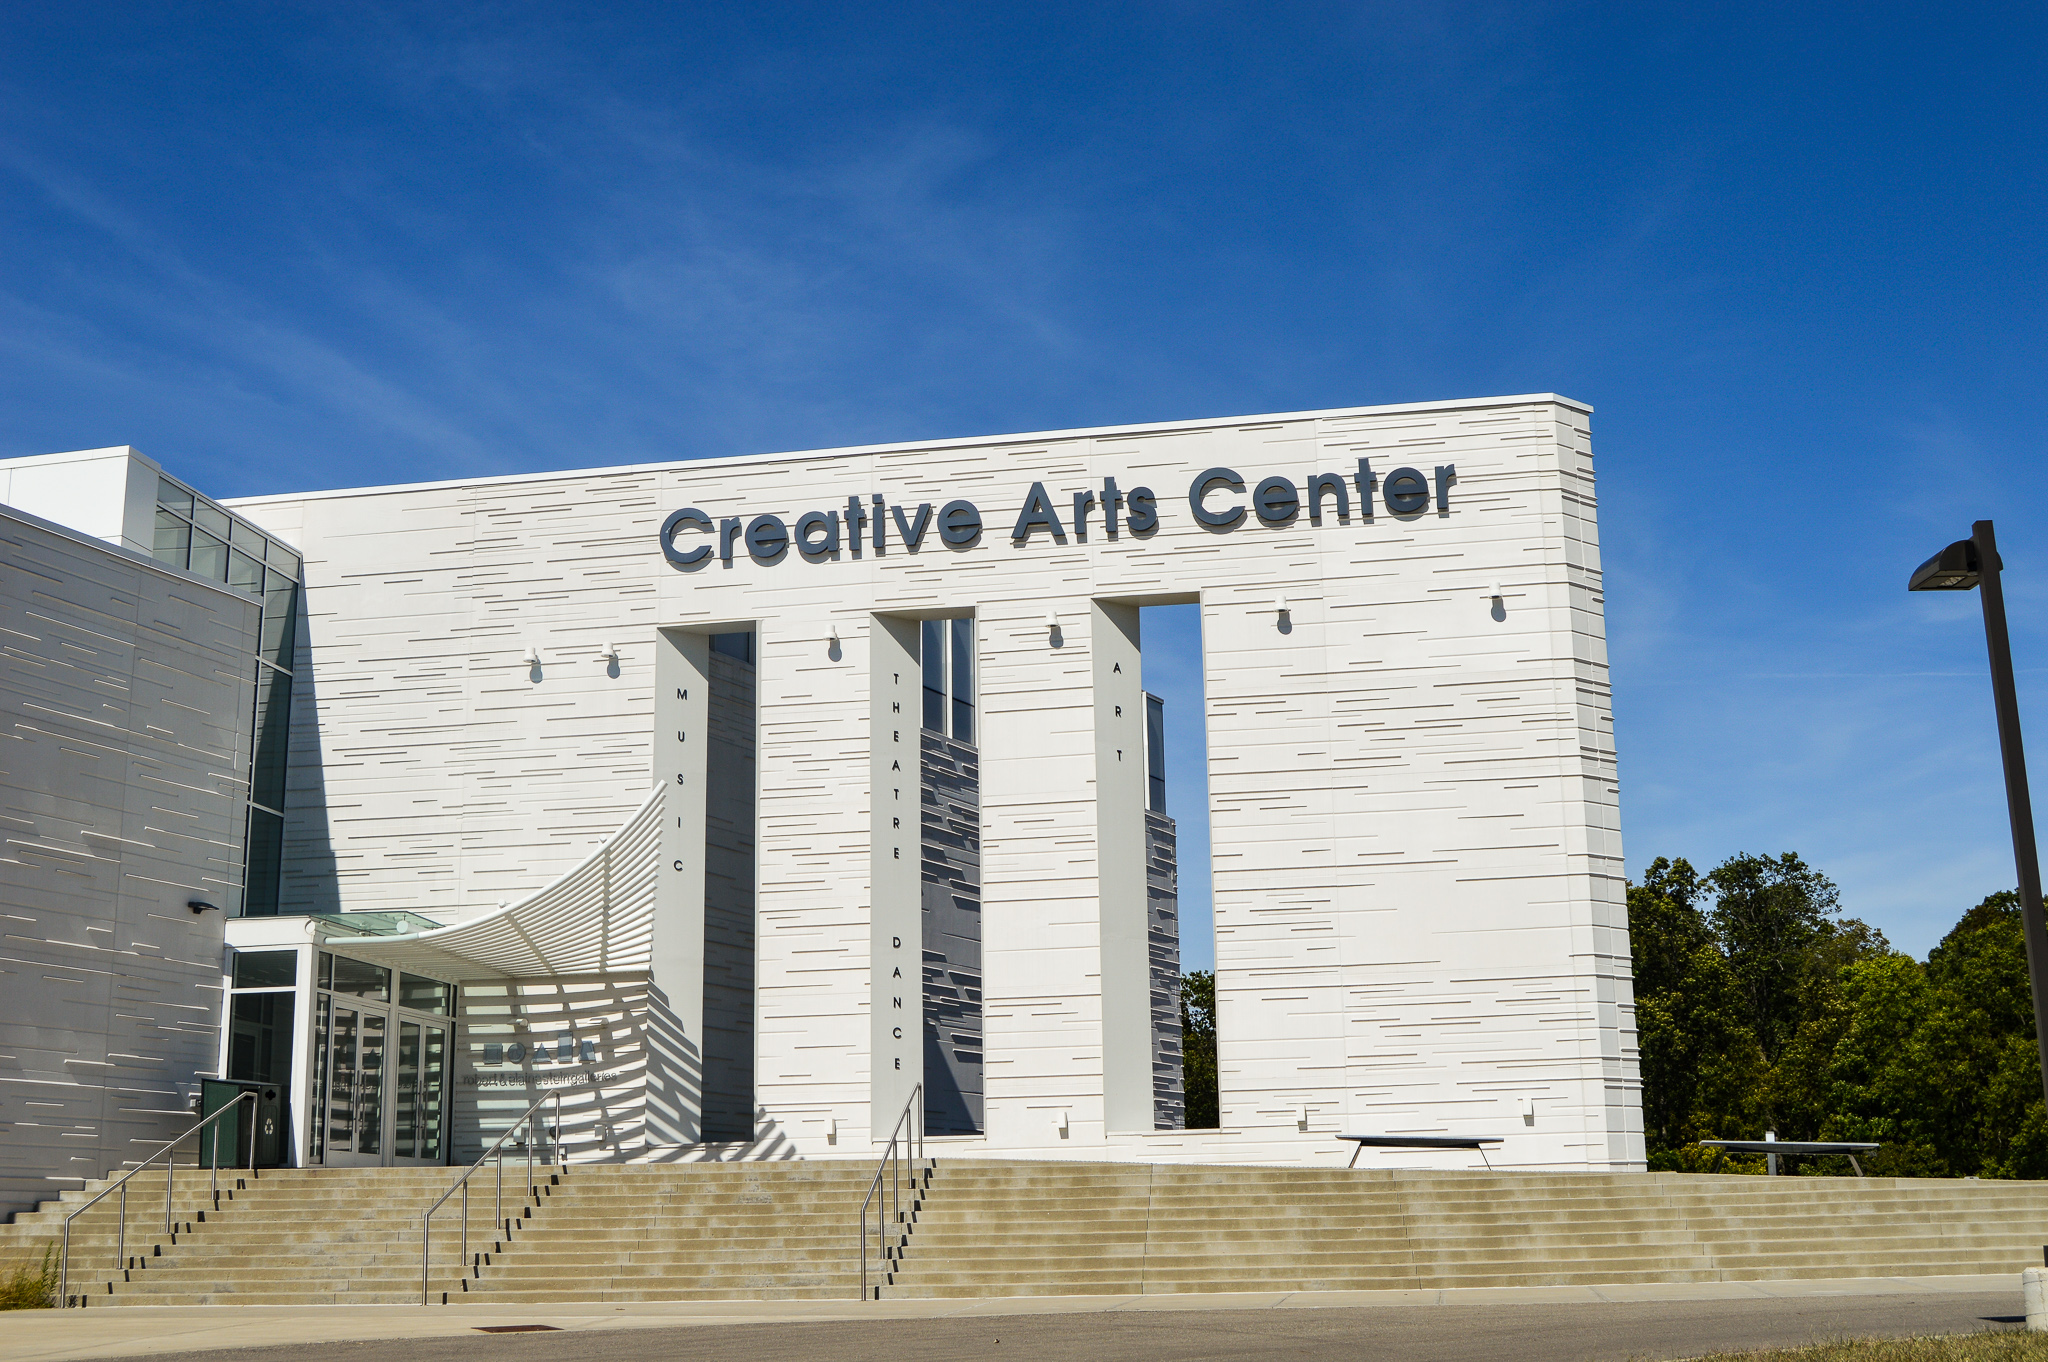 Creative Arts Center | Photo by Cheyenne Waddell | Edited by Jessica Fugett | The Wright State Guardian